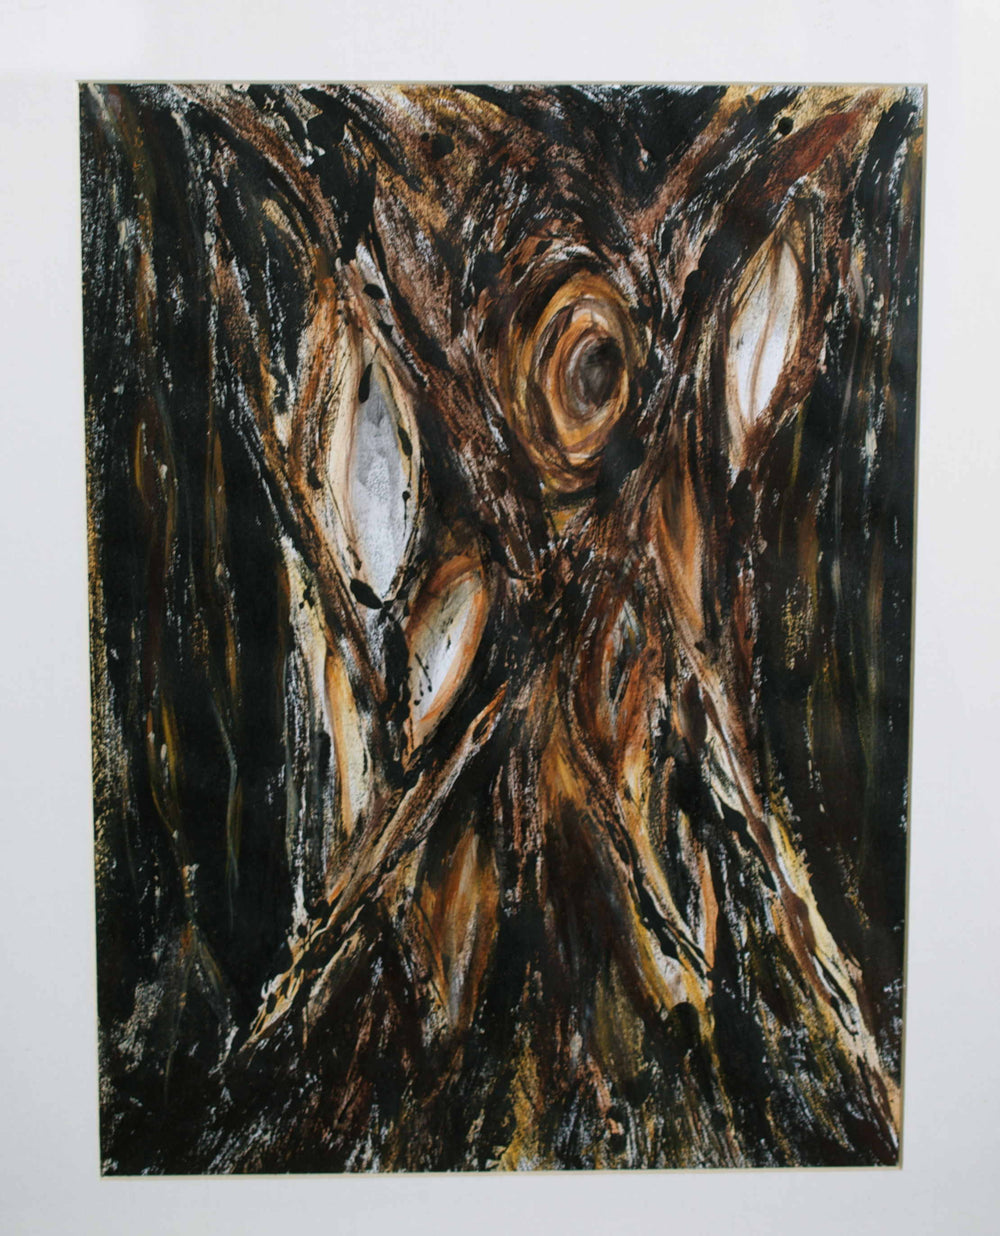 Shades of black, and brown tree trunk abstract art on paper mounted